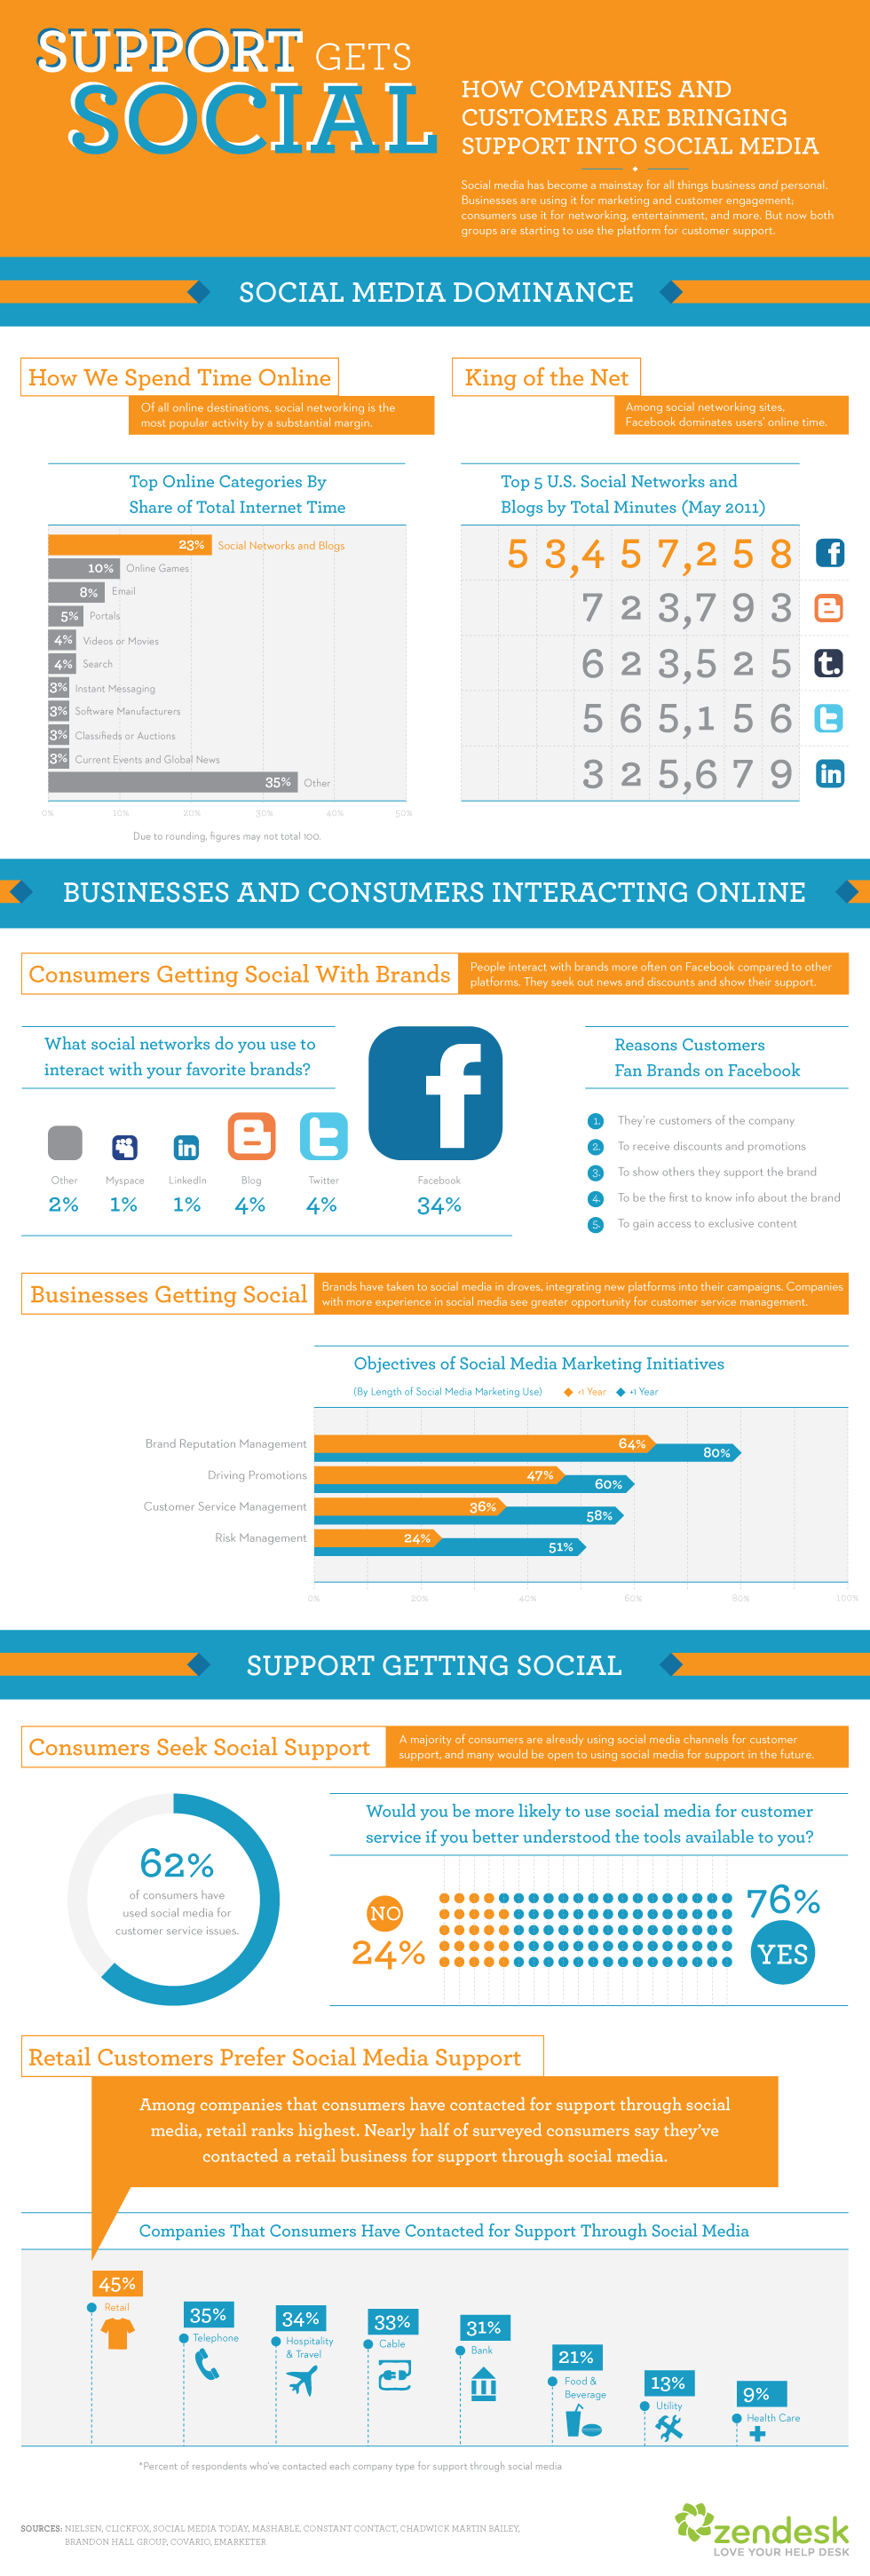 Infog.Support gets social 10.31.111 Study shows 62% of consumers have used social media for customer support